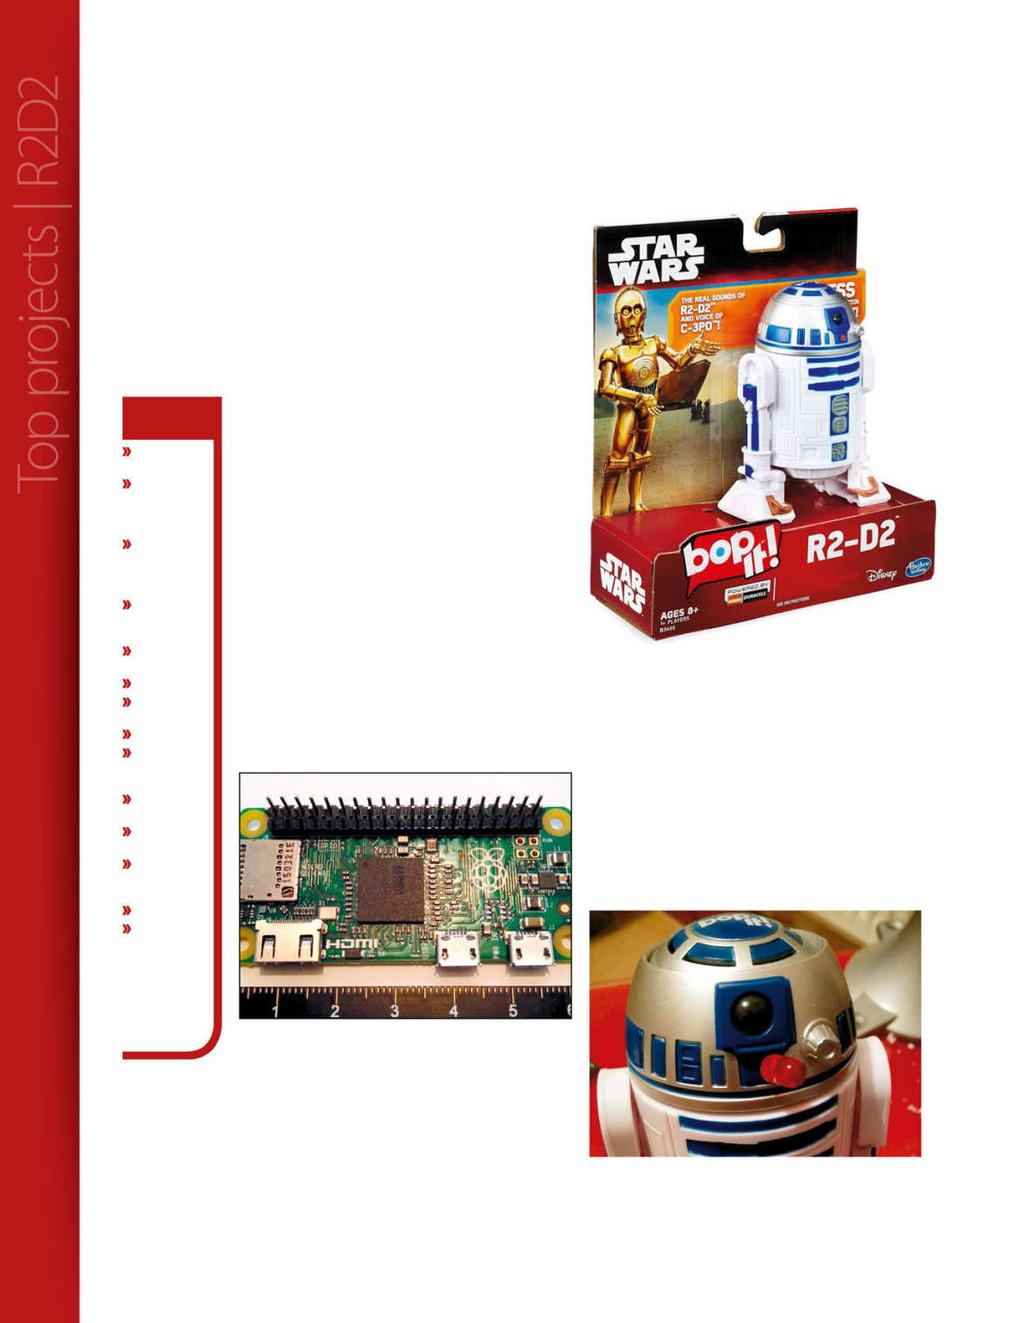 New The Only Guide You Need To Get More From Amazing Mini Pc Bmw 20 Pin Connector Pinout On Ide Usb Cable Wiring Diagram Bring R2 D2 Life We Use A Pi Zero Set Little Bleepblooper